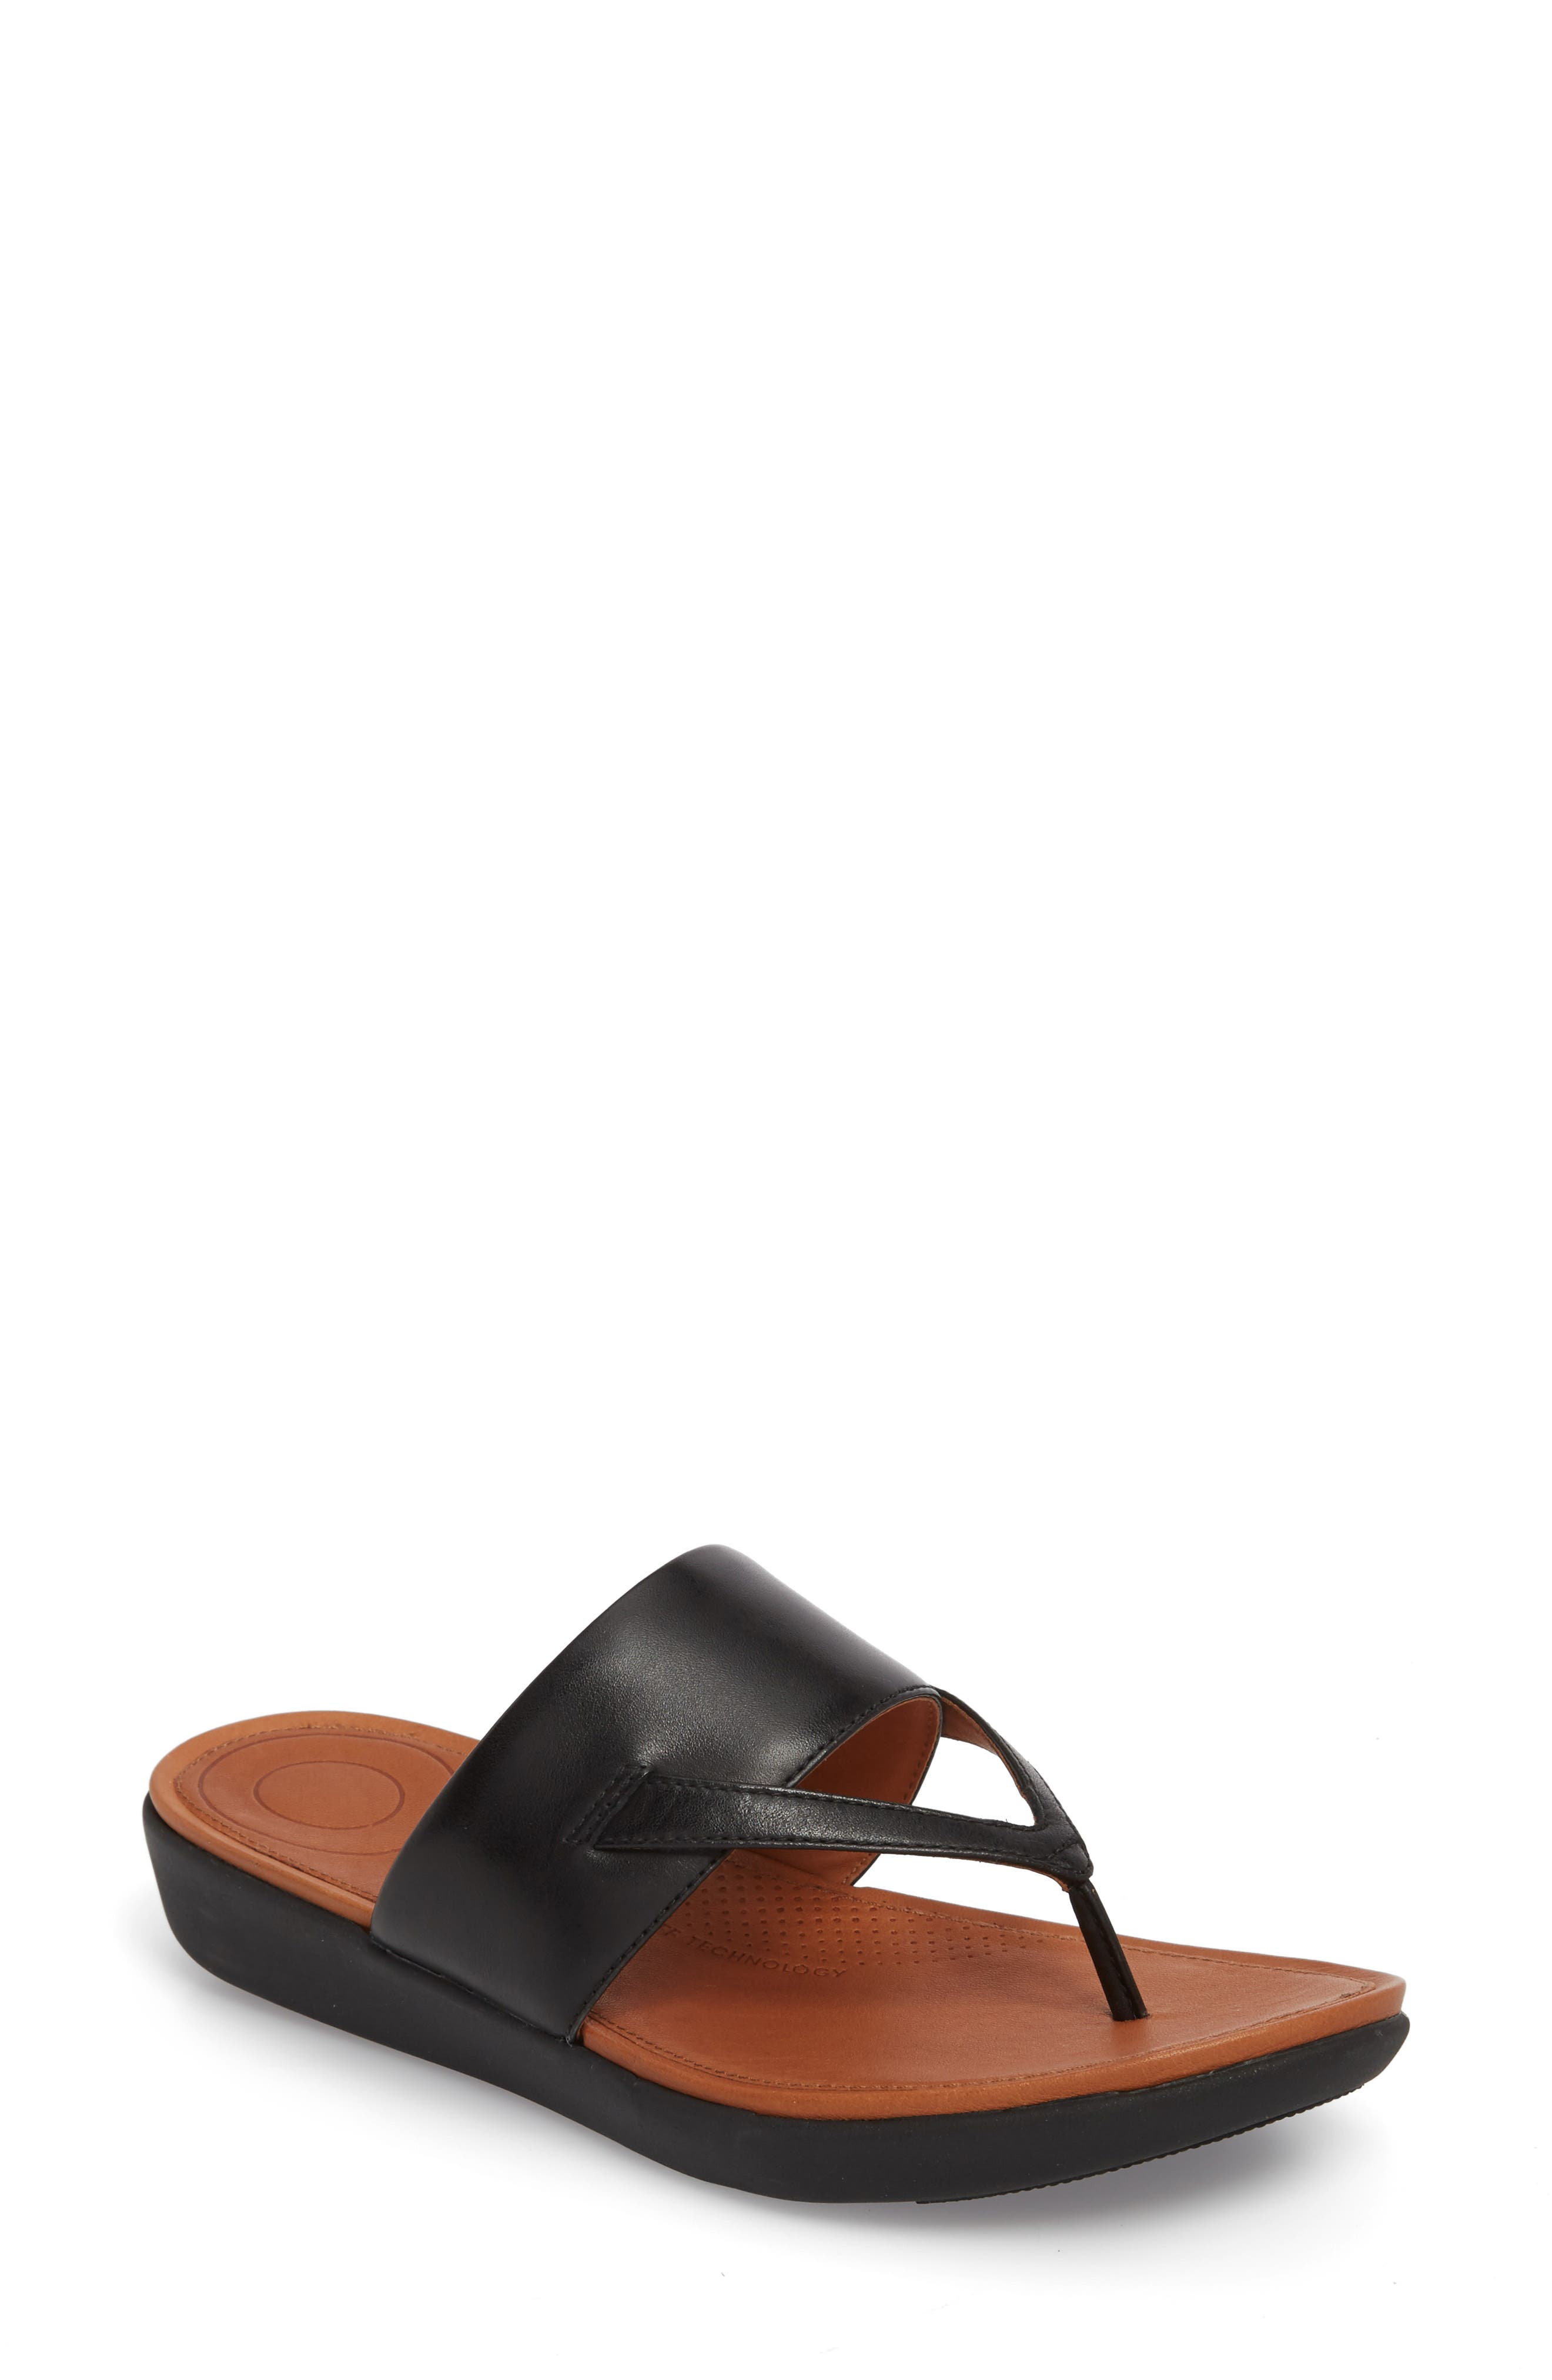 Delta Sandal,                         Main,                         color, 001